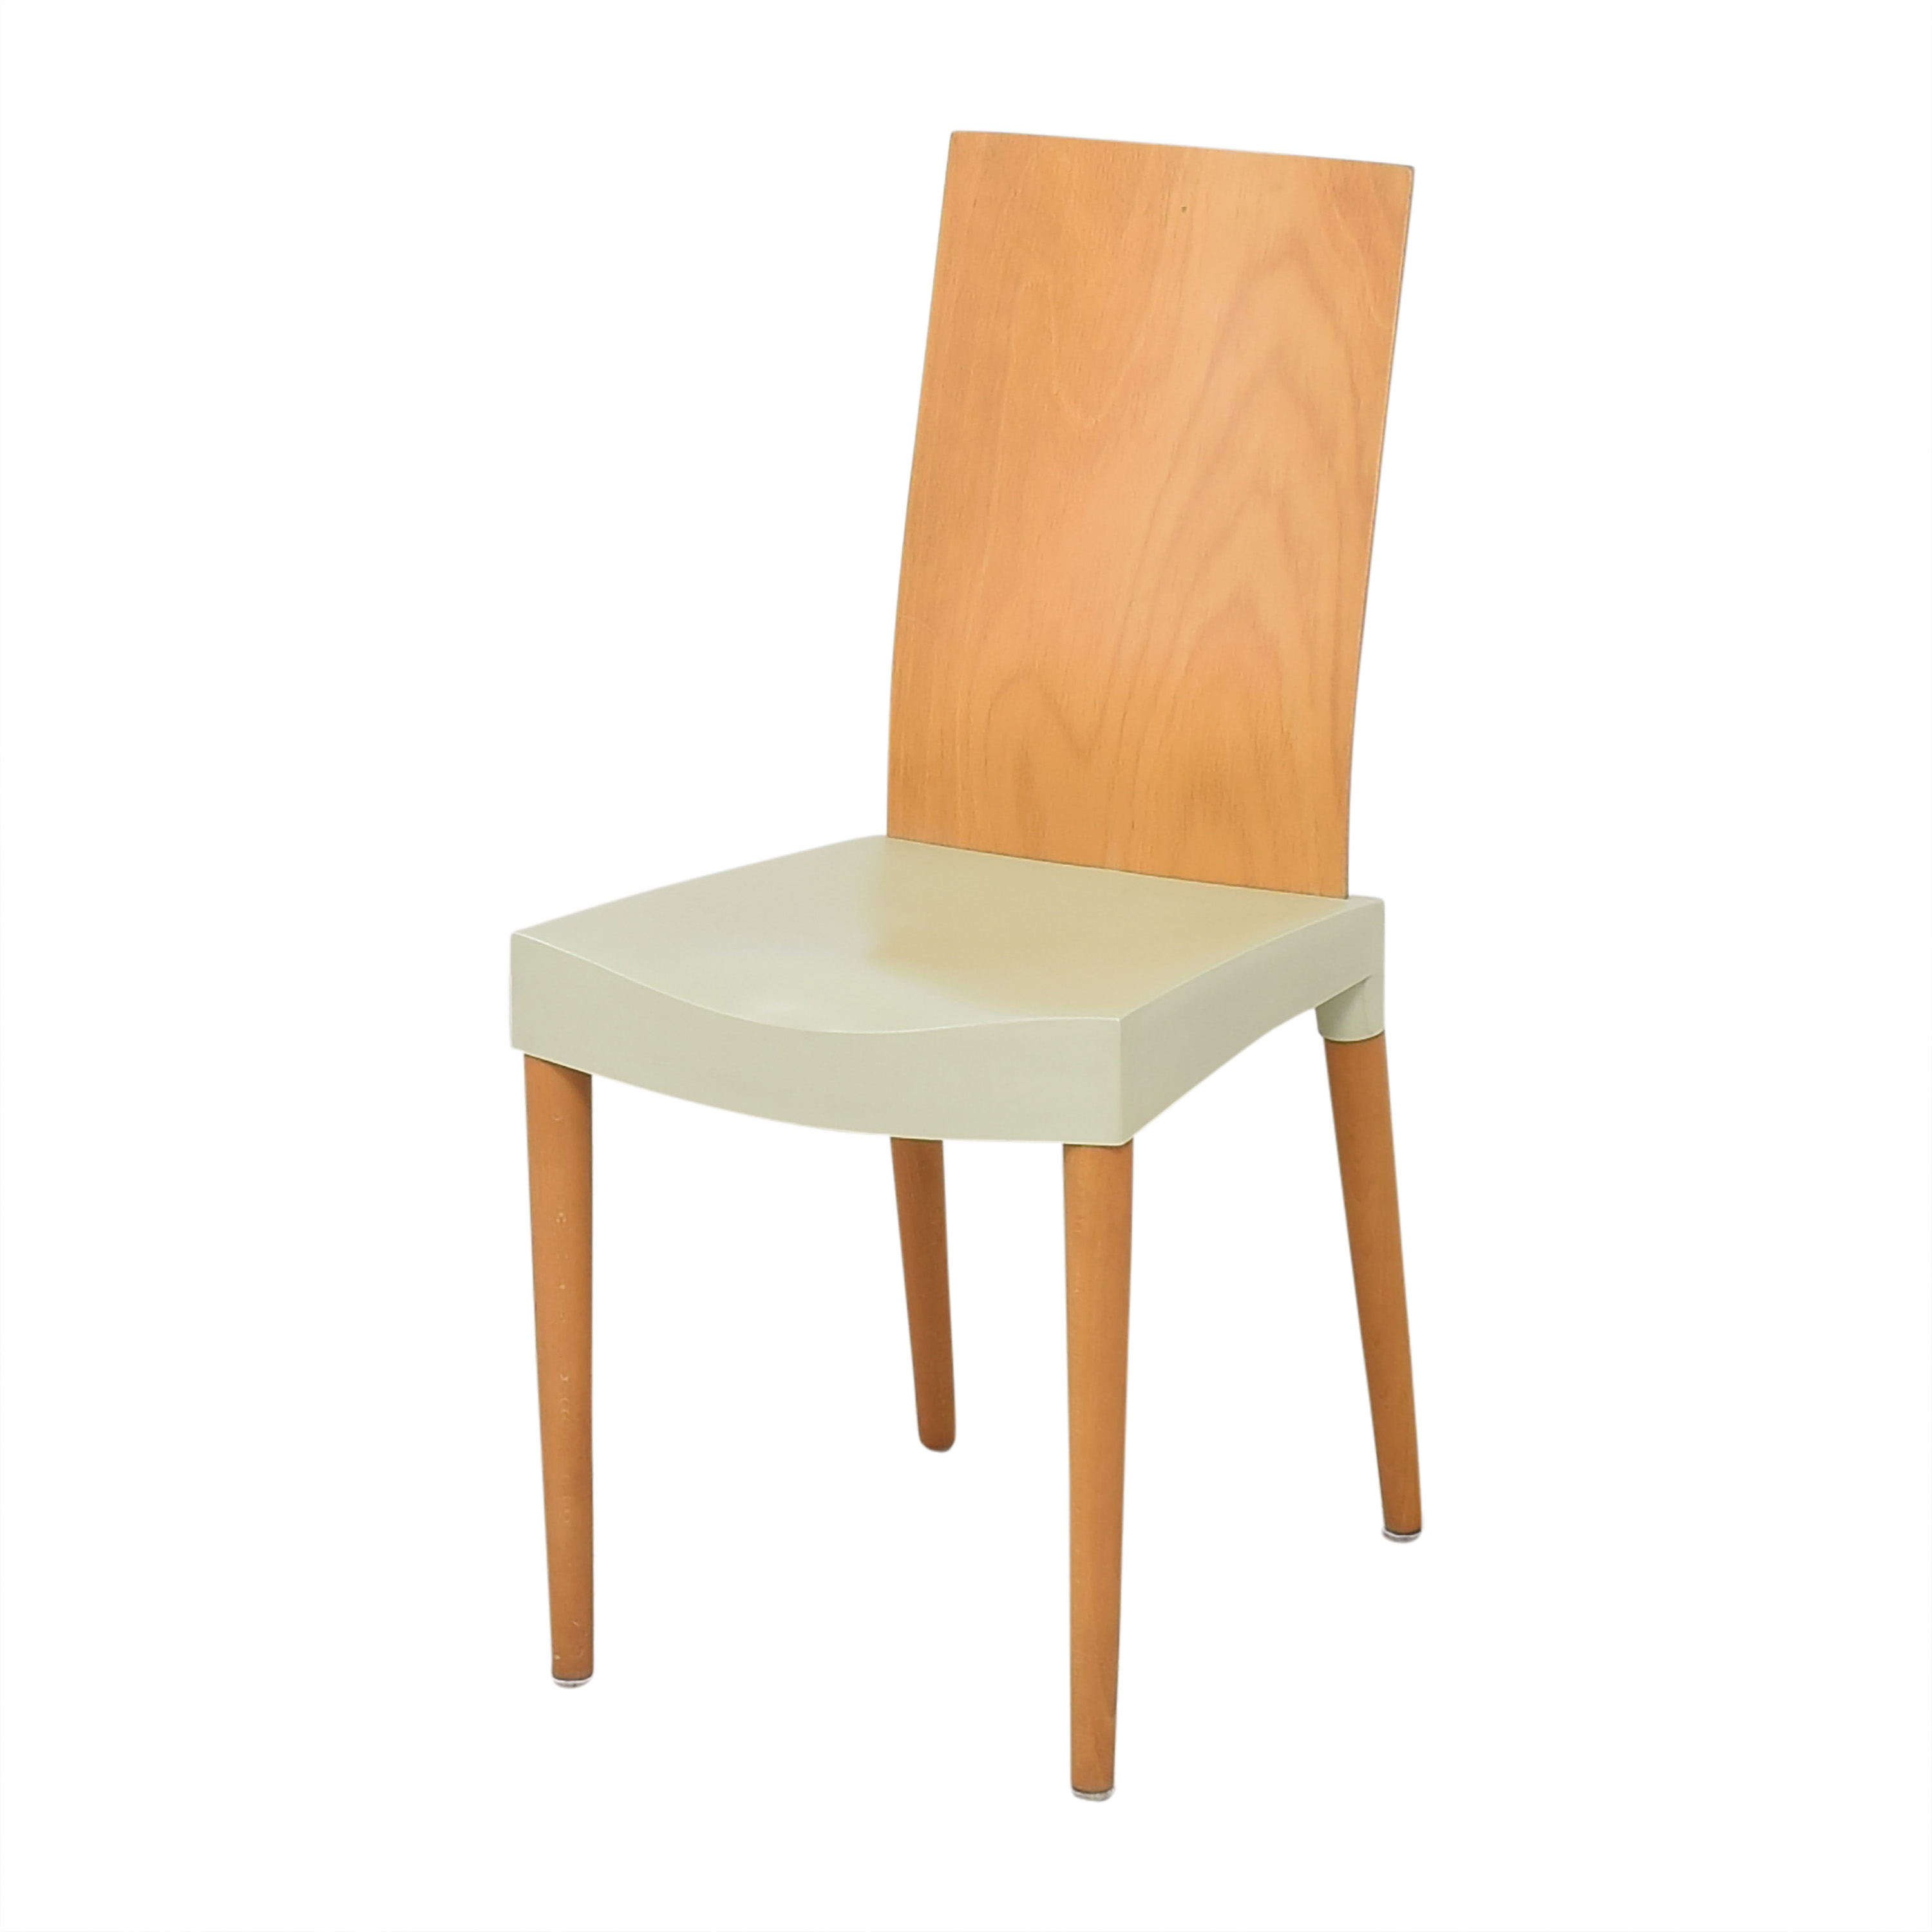 Kartell Kartell by Philippe Starck Miss Trip Dining Chairs green and brown